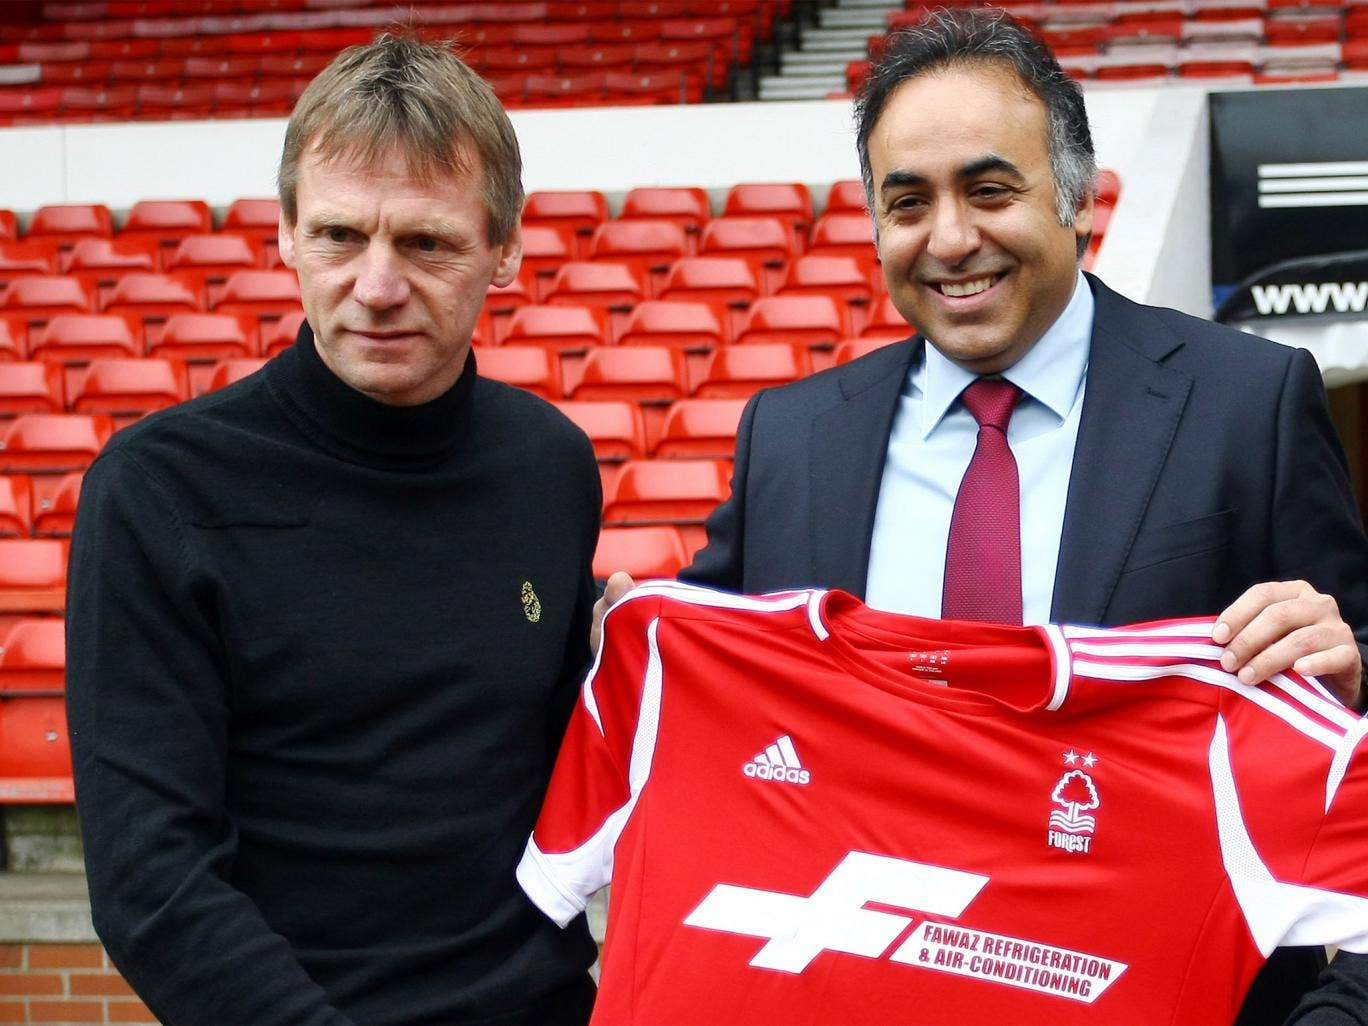 Stuart Pearce is unveiled as Forest manager by owner Fawaz al-Hasawi in happier times at the City Ground